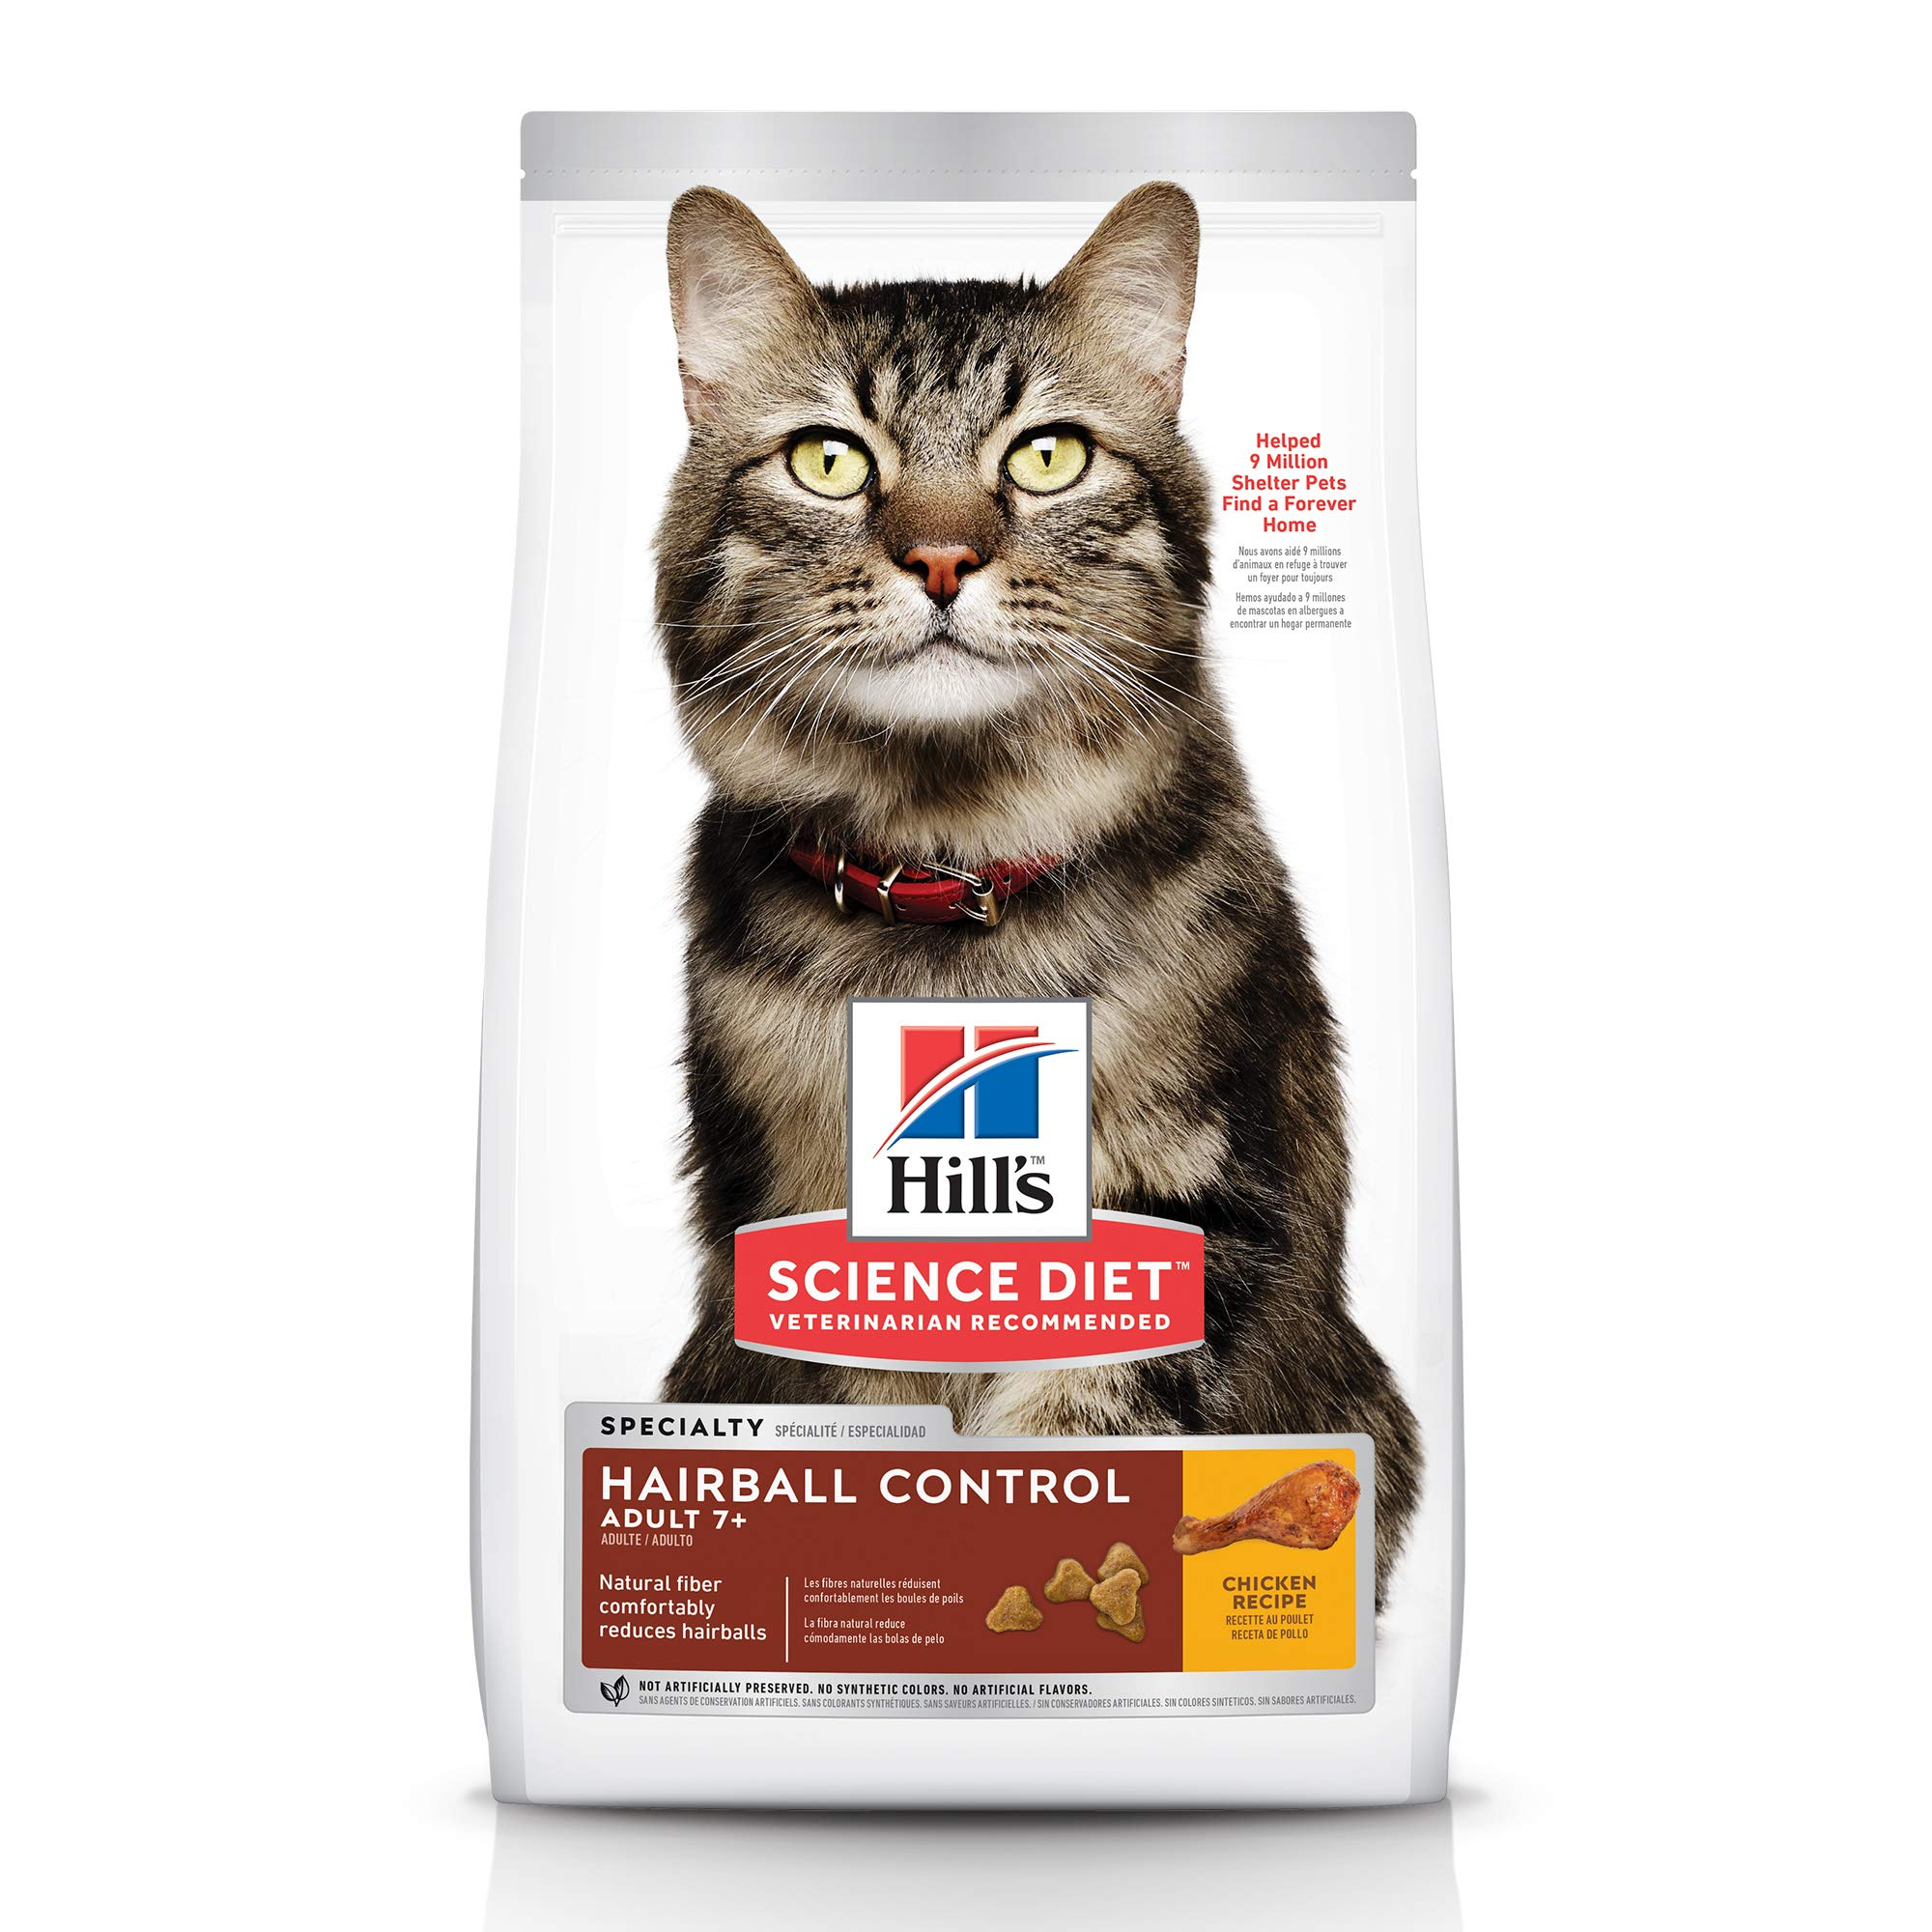 Hill's Science Diet Dry Cat Food, Adult 7+ for Senior Cats, Hairball Control, Chicken Recipe, 15.5 lb Bag